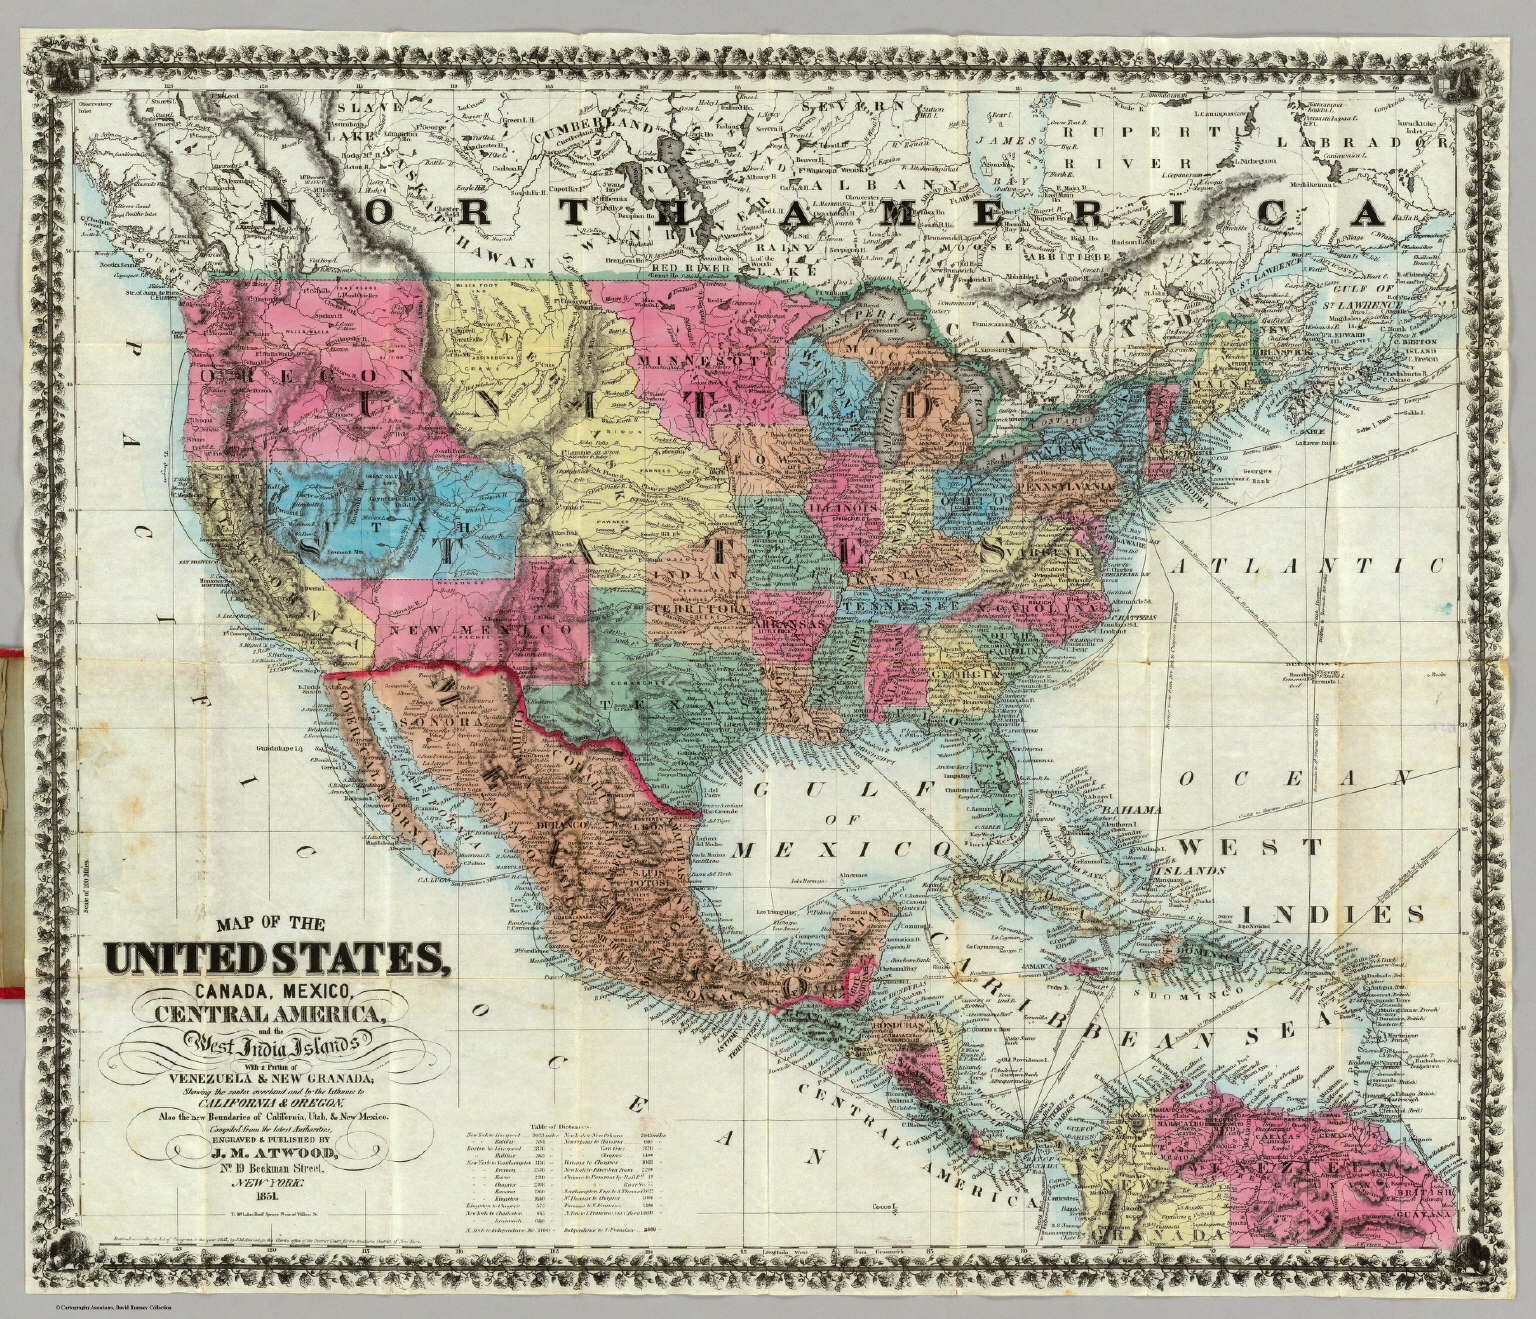 Map Of The United States, Canada, Mexico, Central America ...